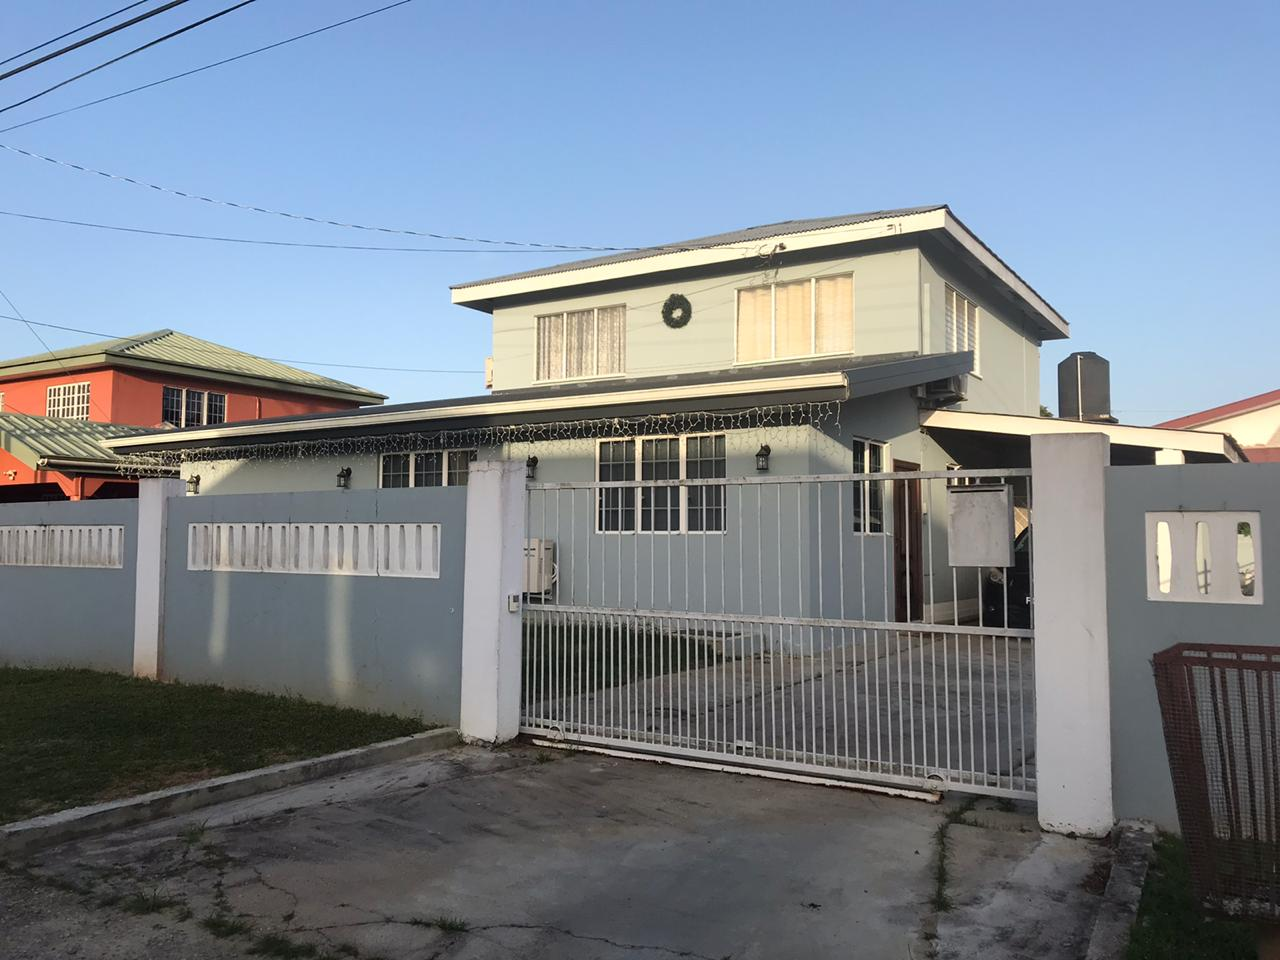 LANGE PARK HOUSE REDUCED TO $3M